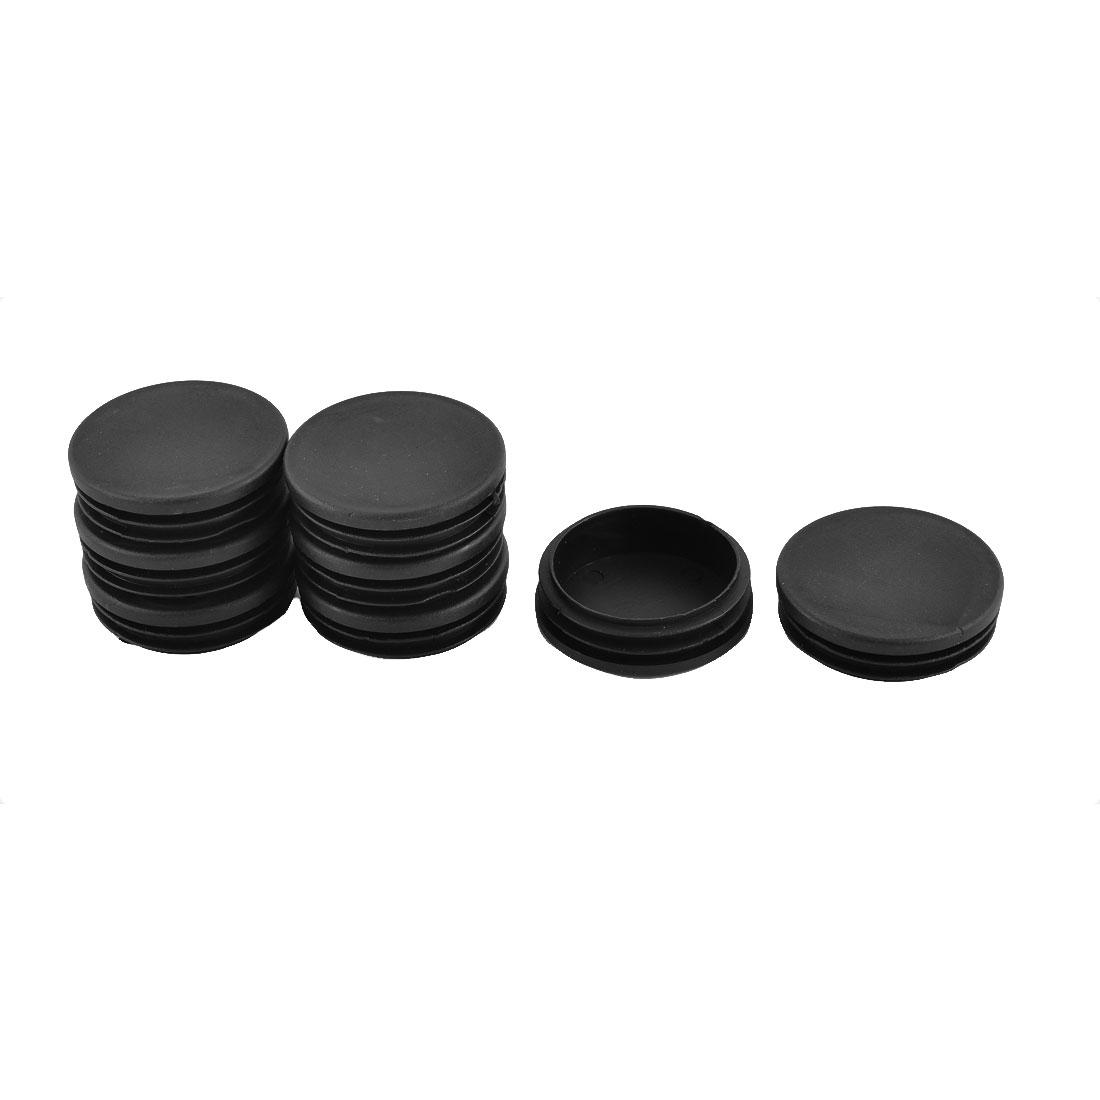 Furniture Table Chair Leg Foot Plastic Round Tube Insert Cap Cover Black 58mm Dia 8pcs